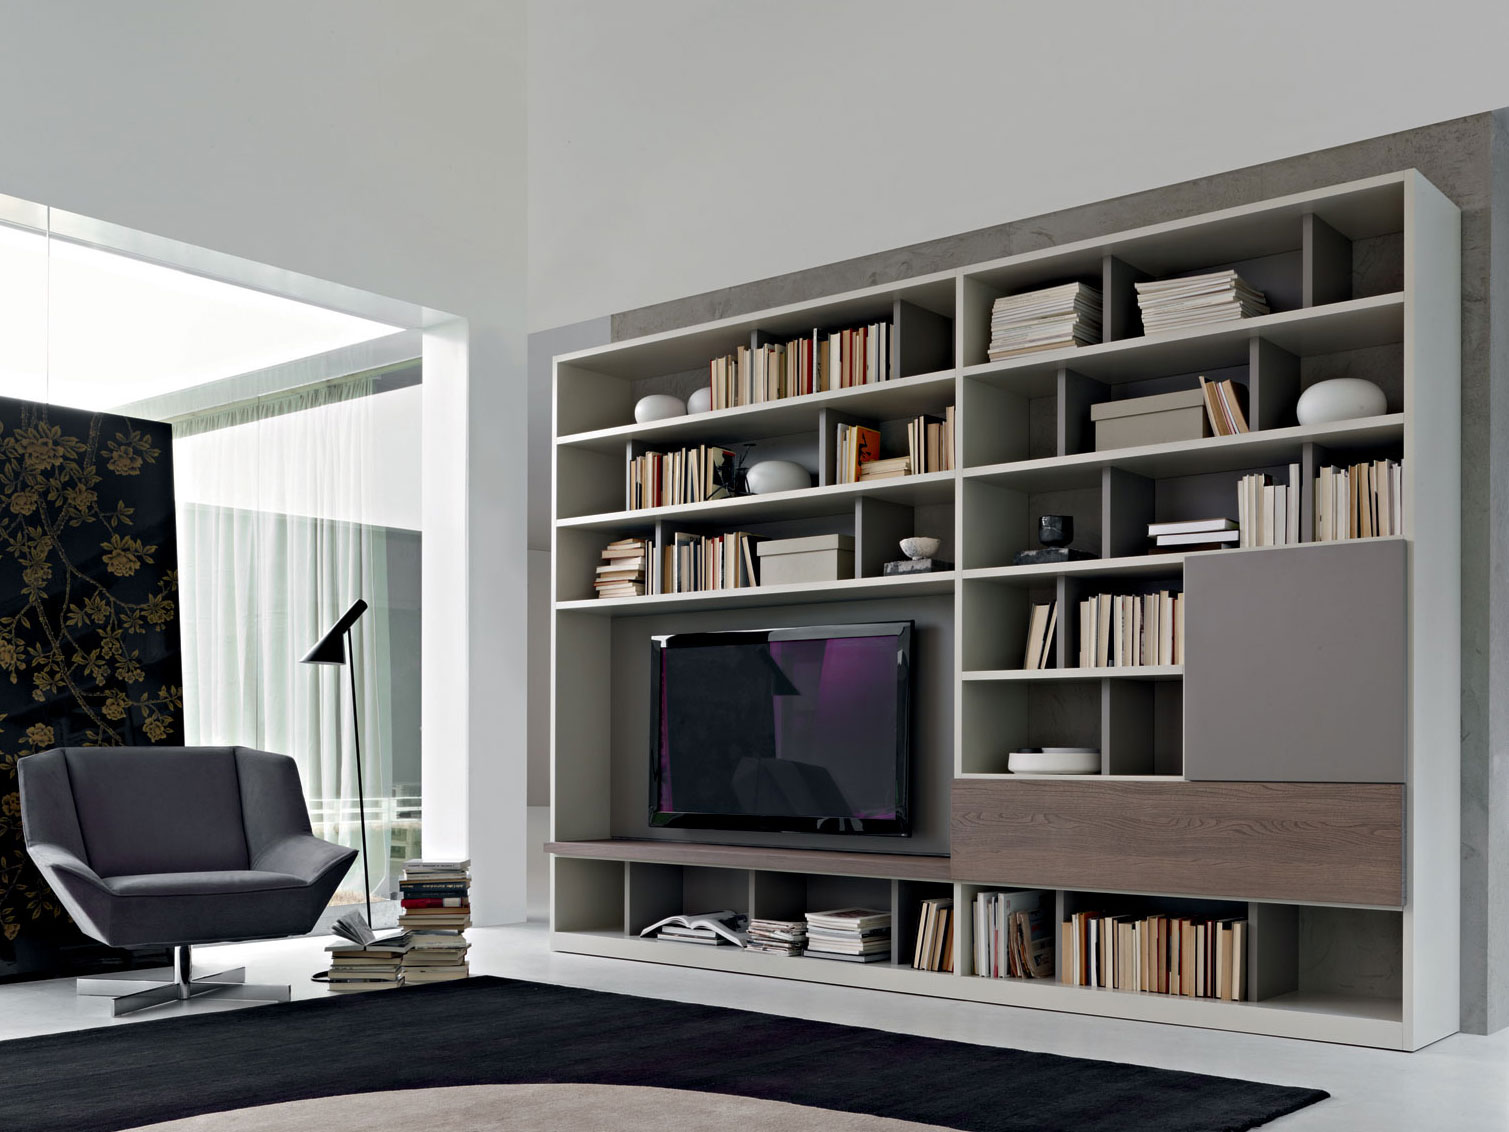 505 2011 ed mueble modular de pared by molteni c for Molteni catalogo